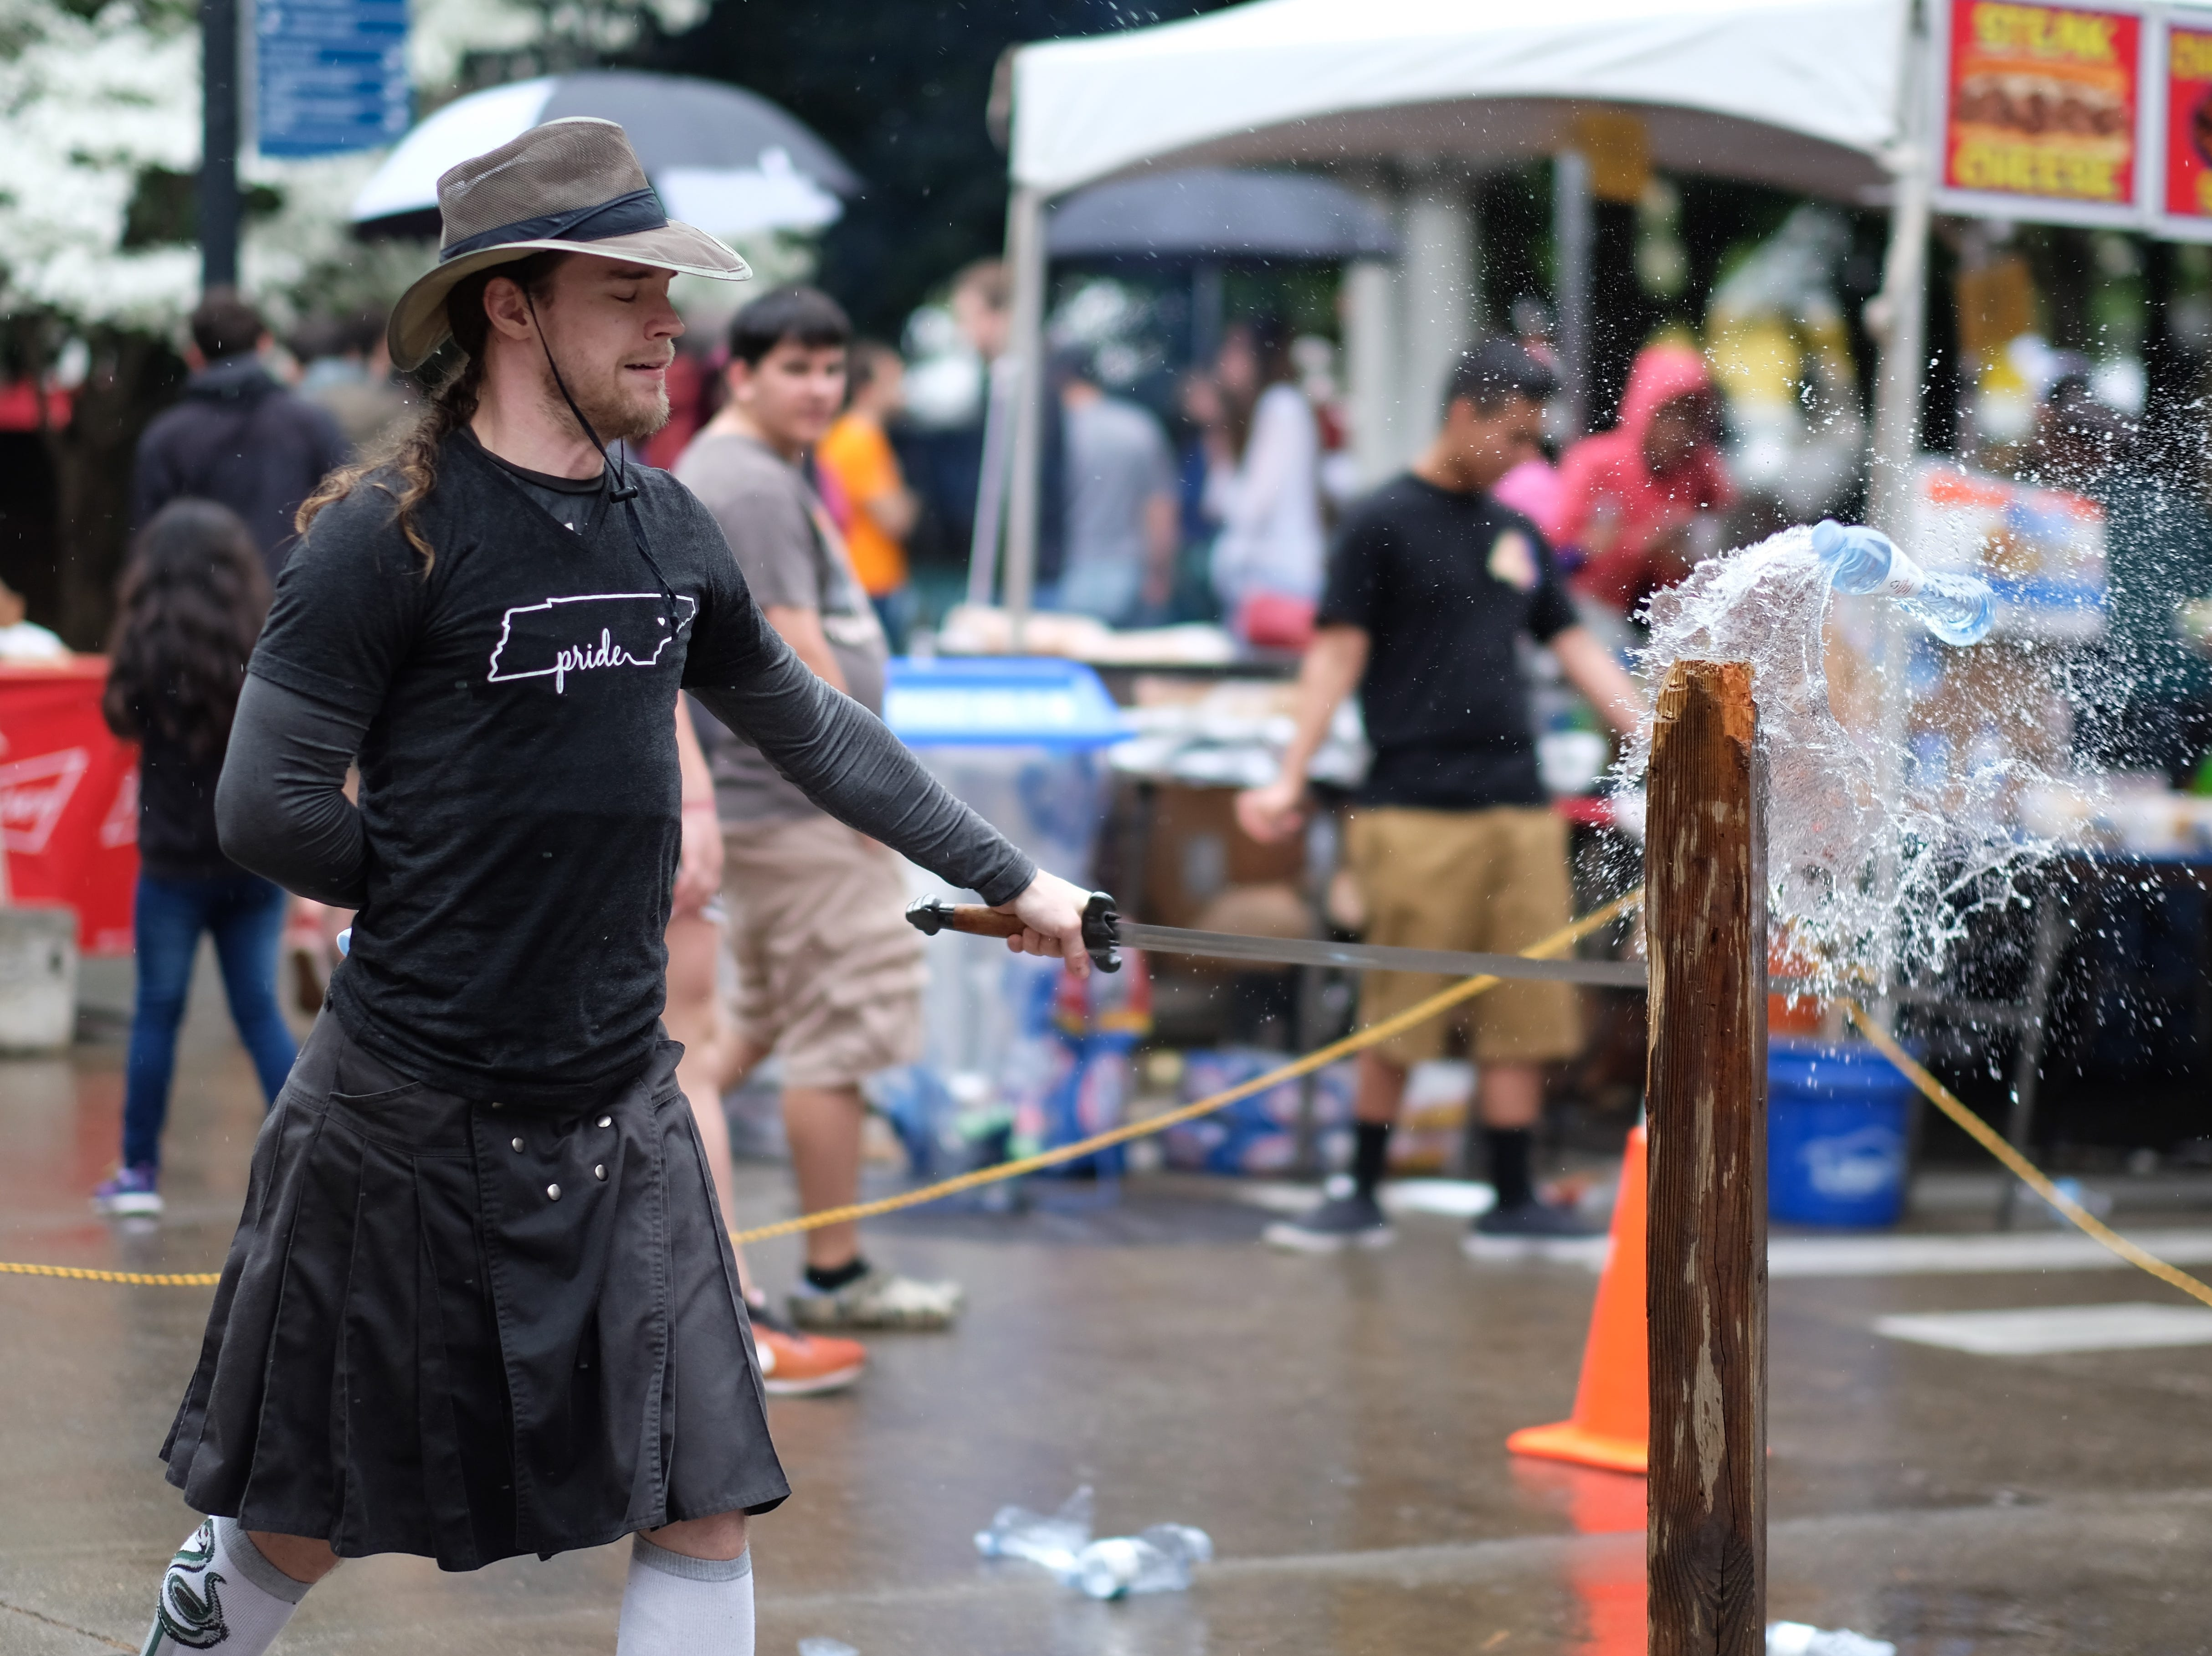 Tom Farmer of Knoxville Academy of the Blade slices a water bottle in half during the Rossini Festival in Knoxville on Saturday, April 13, 2019. 